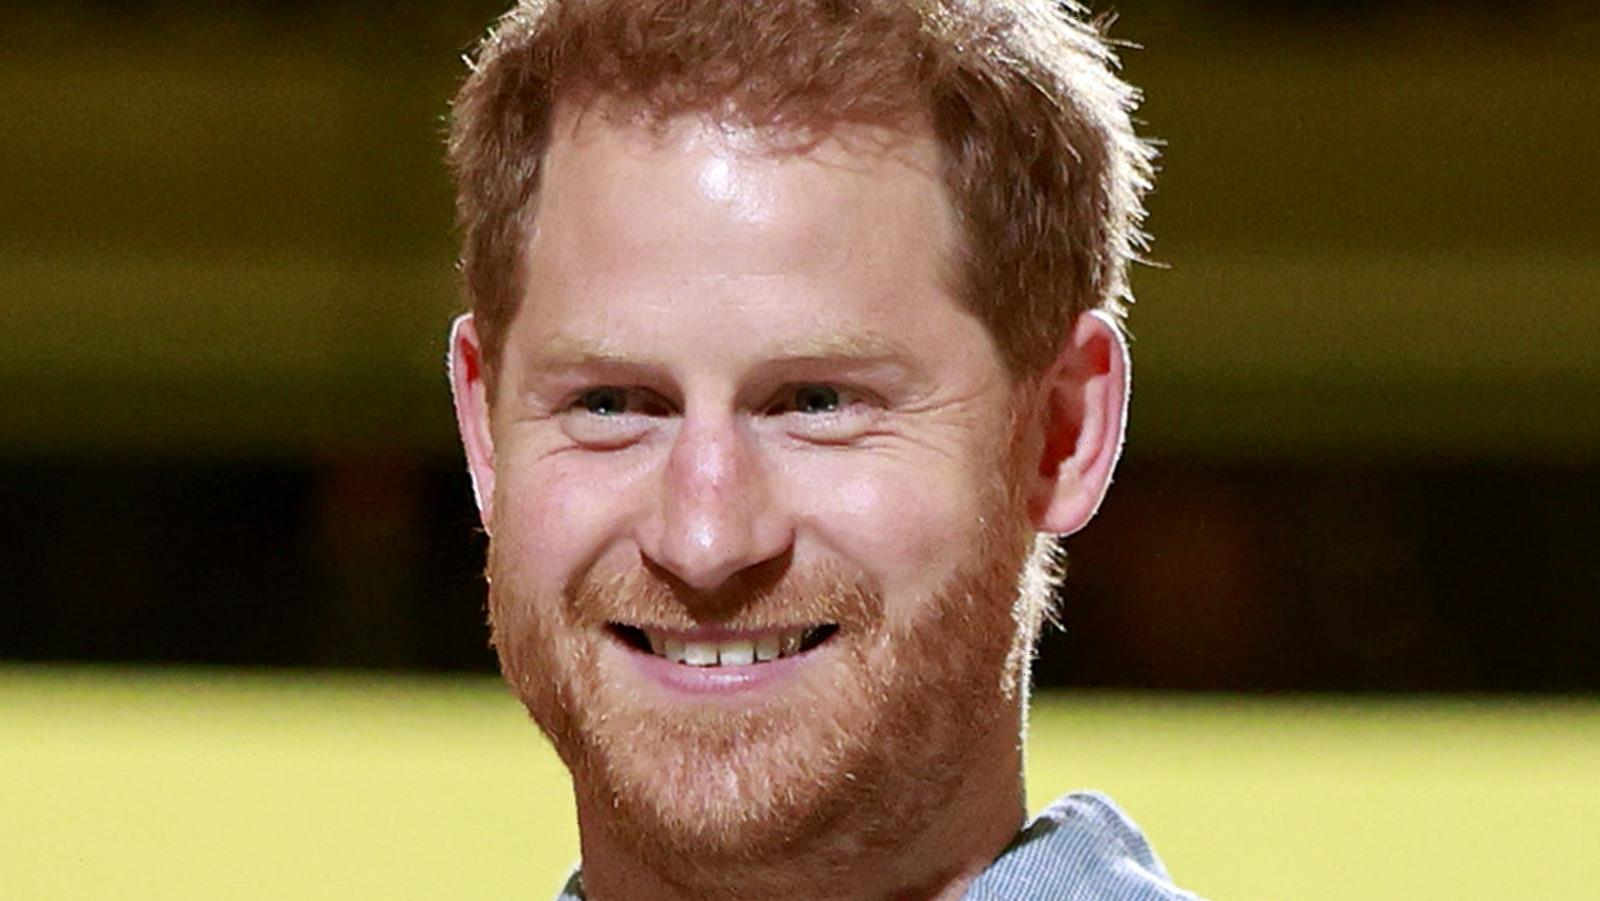 The Real Reason Palace Insiders Are Fuming Over Prince Harry's Latest Interview